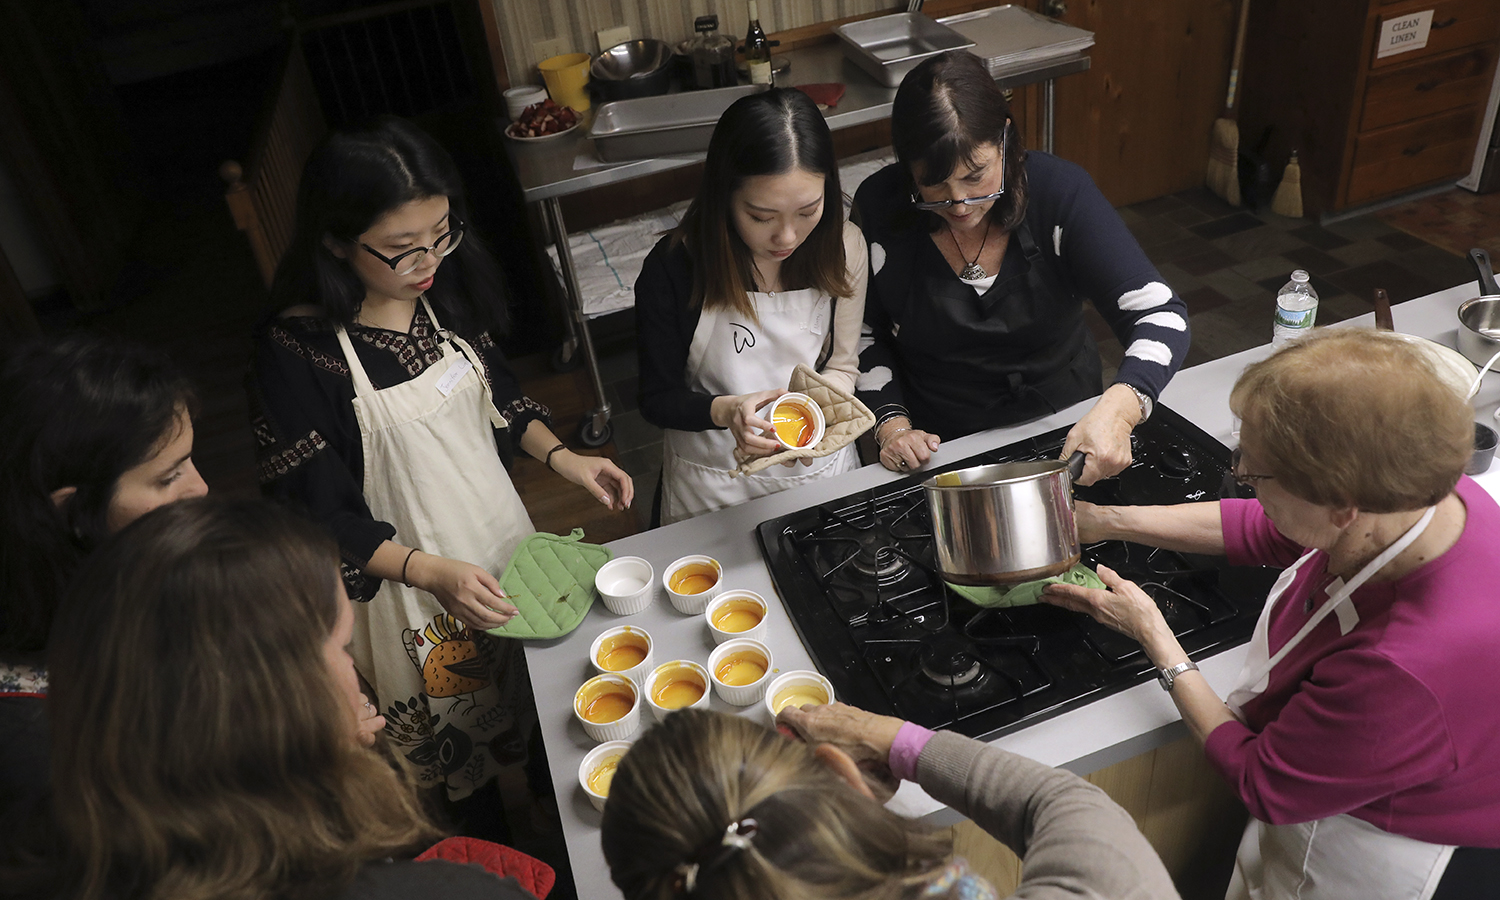 Renowned Kosher chef, food scholar and author Tina Wasserman helps students pour homemade caramel into ramikins as part of âCooking, Culture and Chemistry.â